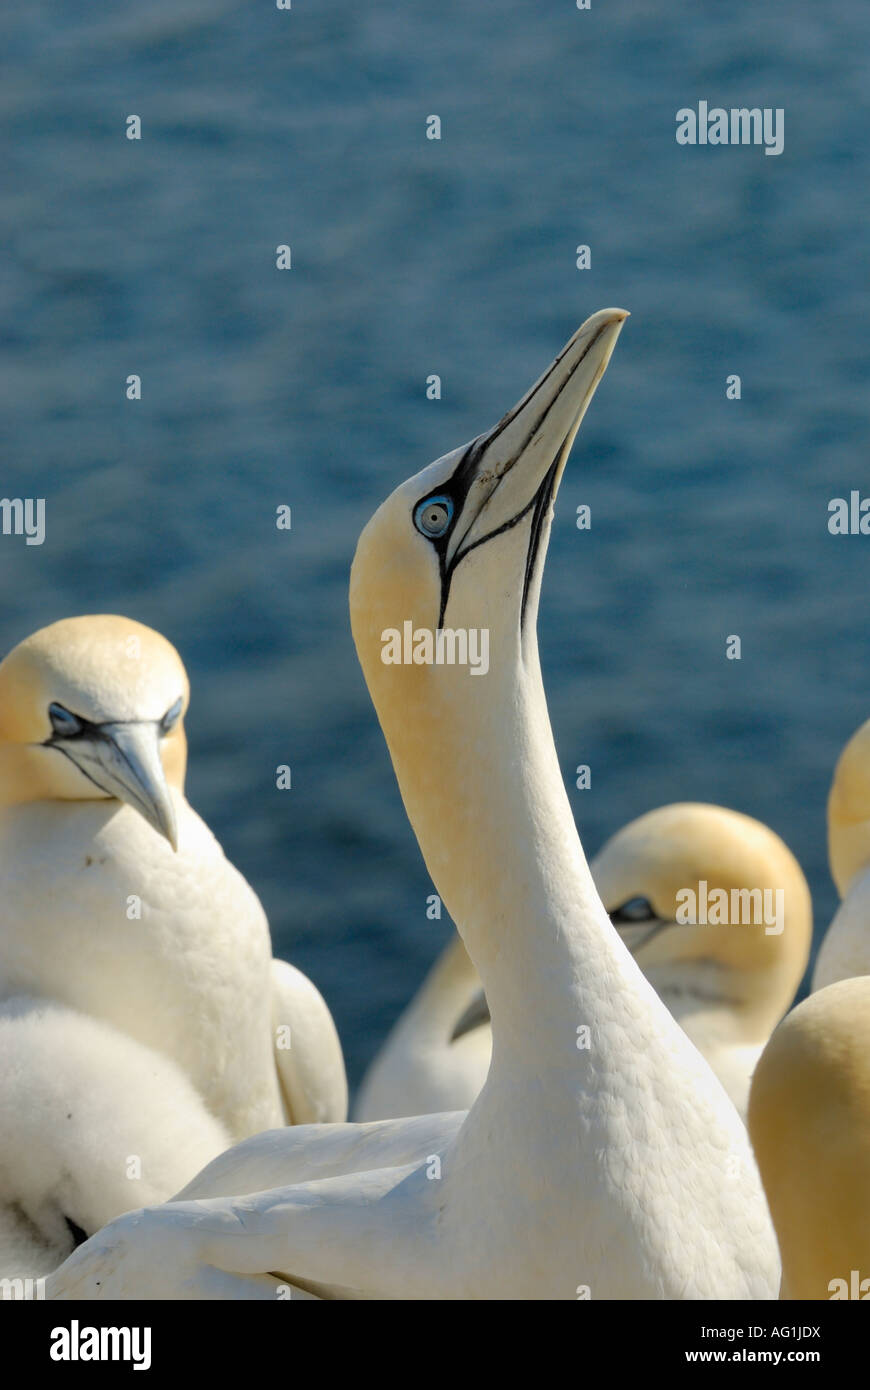 Northern Gannet, Morus bassanus, neck stretching, Bass Rock, Firth of Forth, Scotland - Stock Image